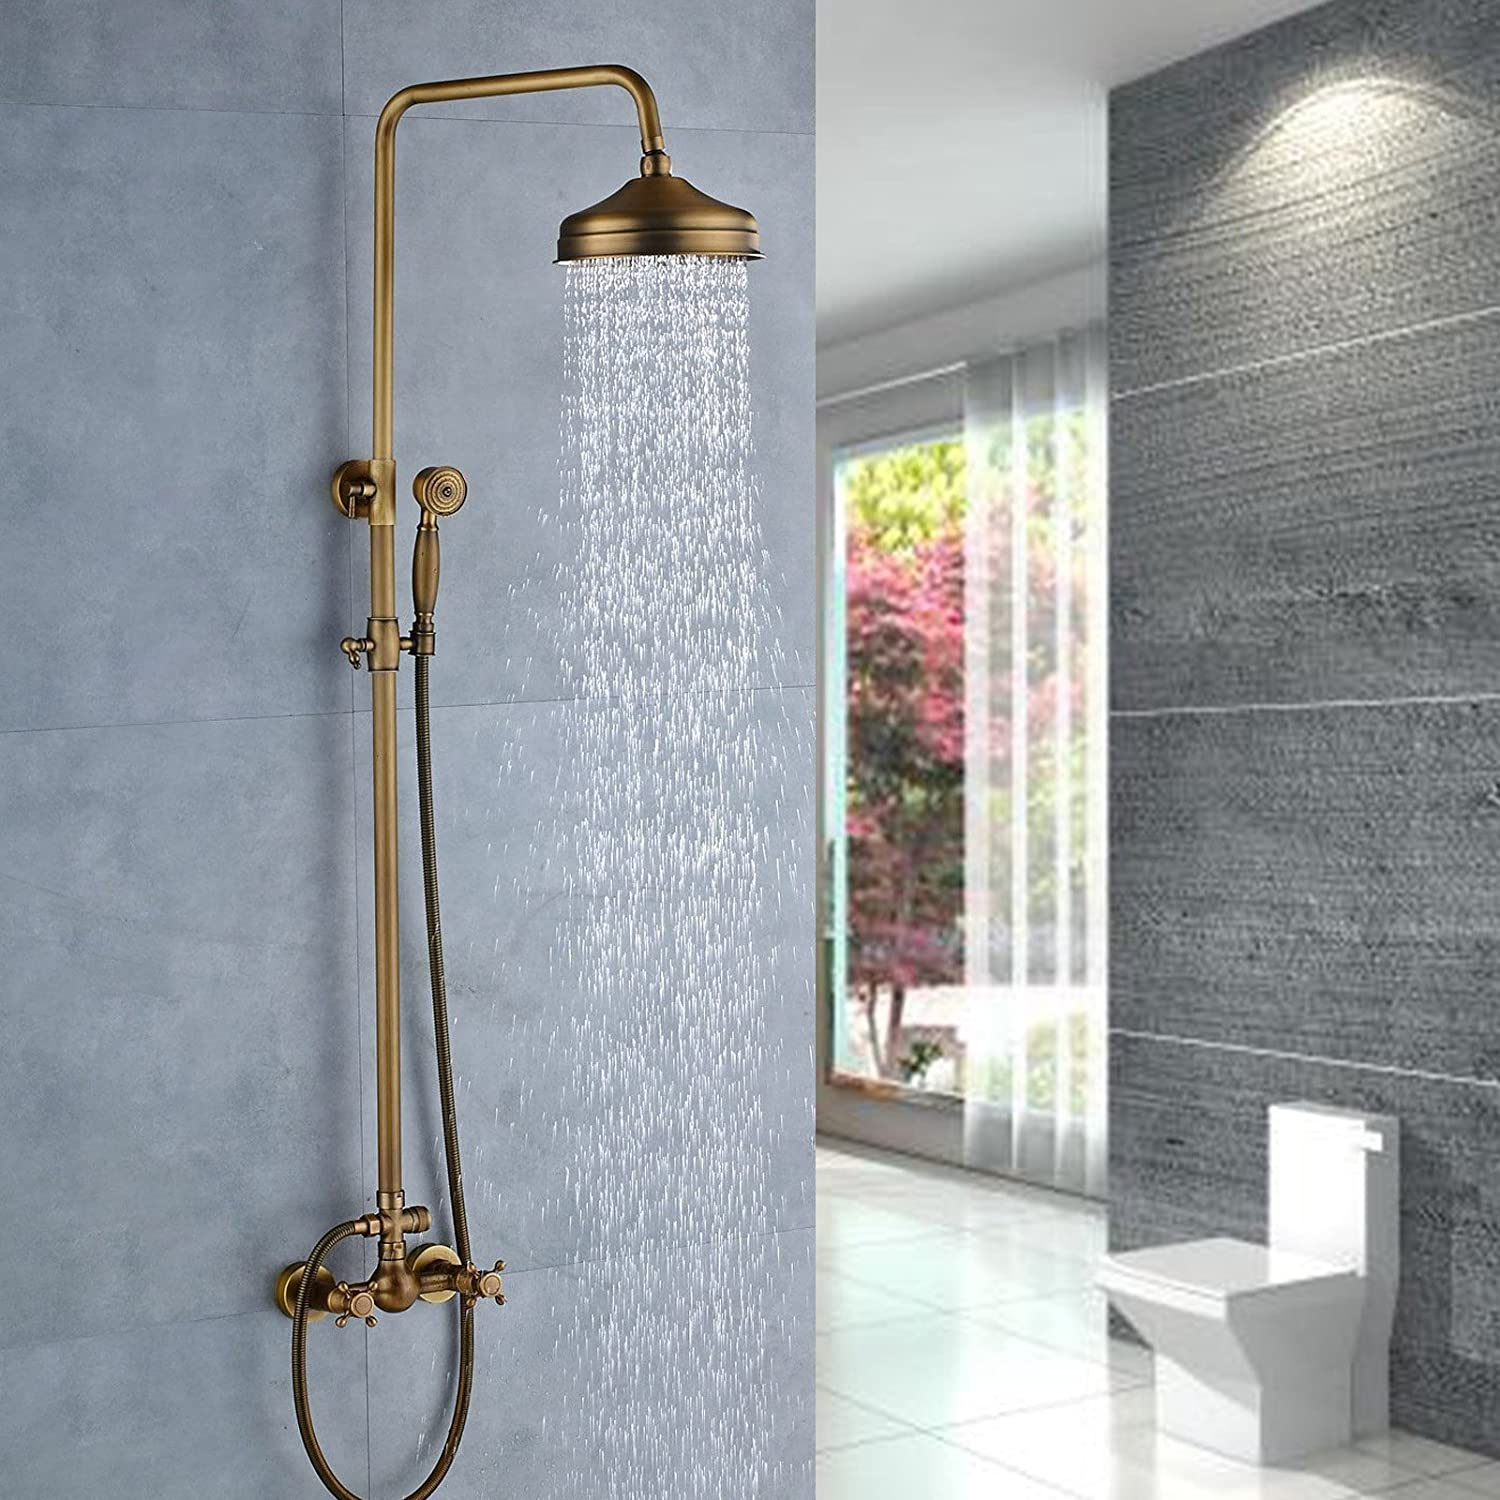 Senlesen Antique Brass Bathtub Mixer Faucet 8-inch Rainfall Shower ...